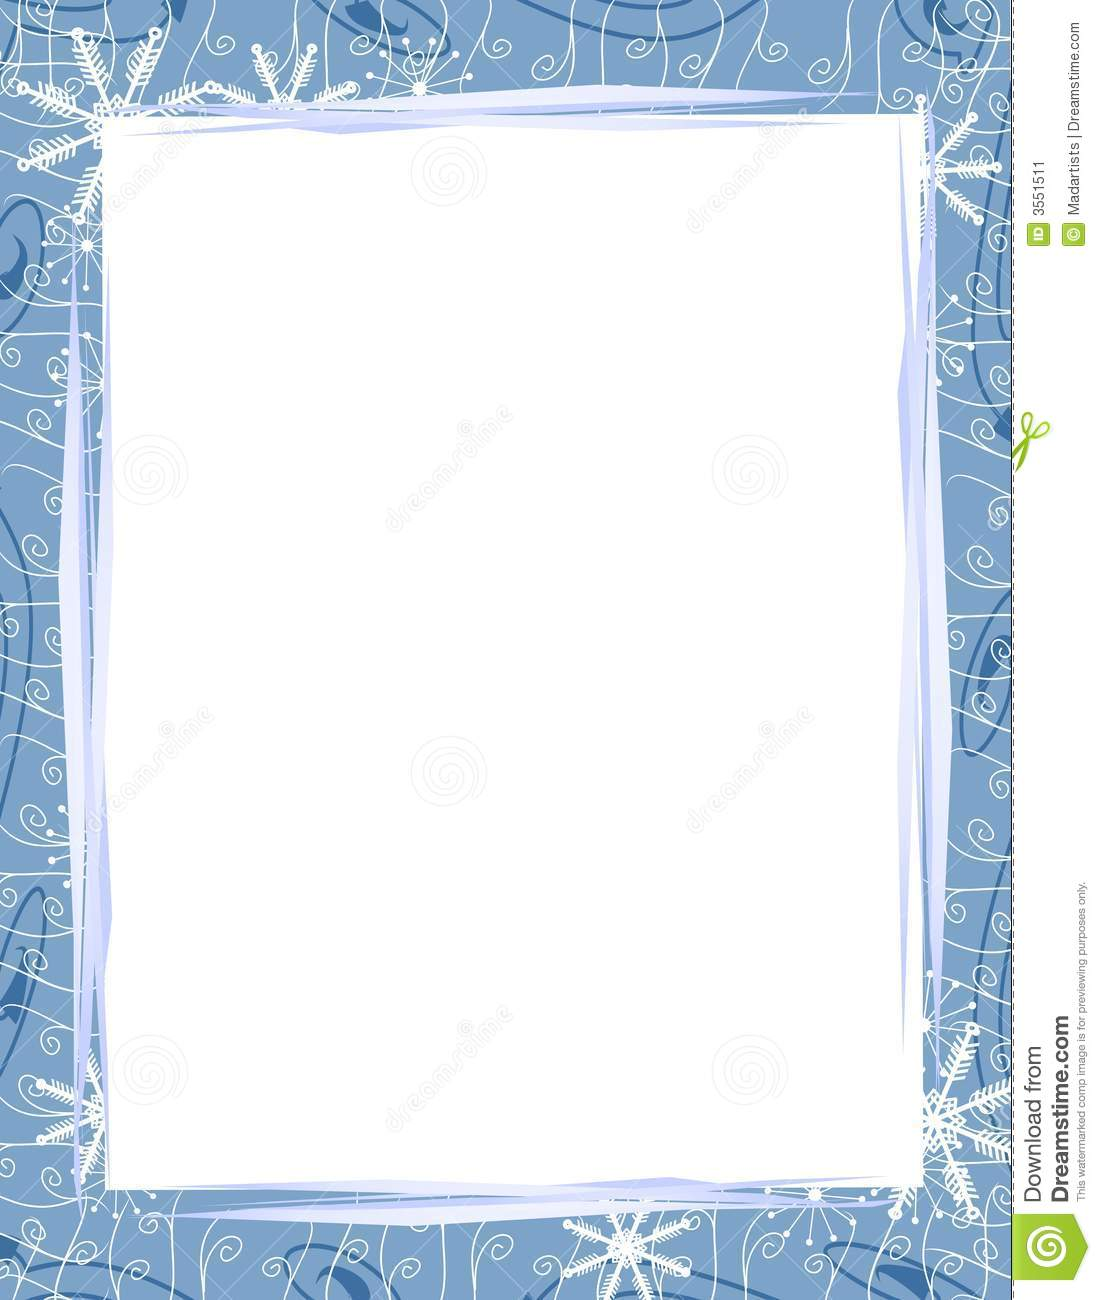 background border or frame of casually arranged paper, Christmas ...